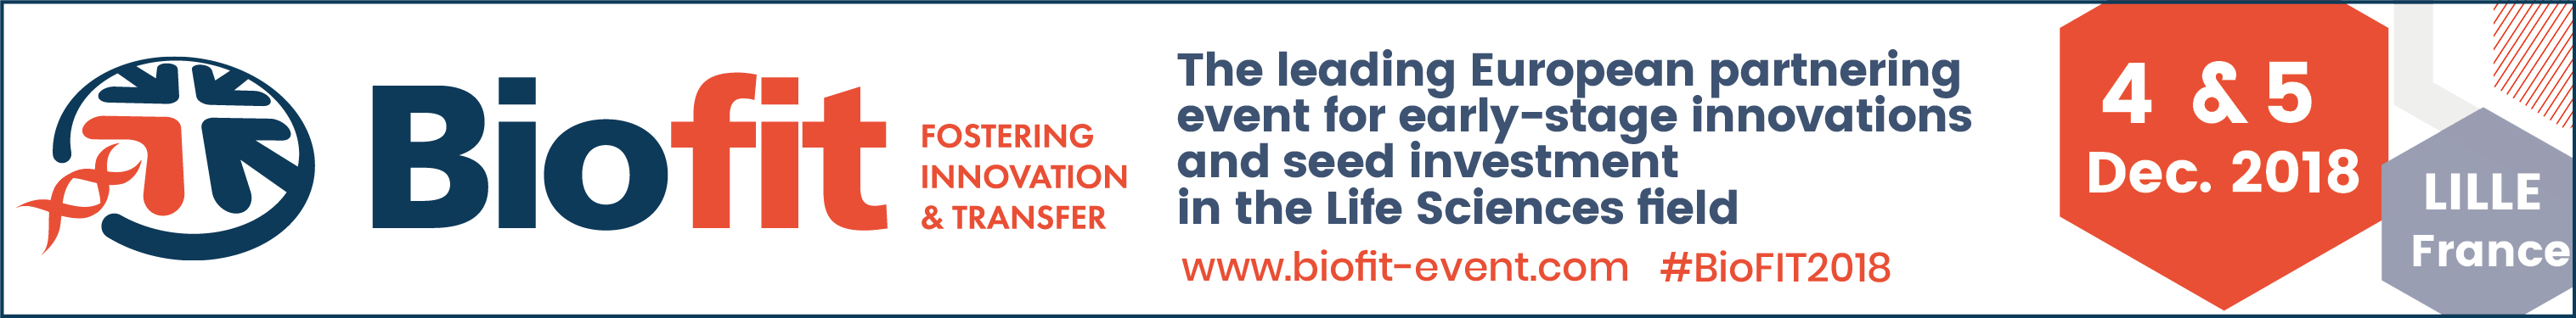 https://www.biofit-event.com/?utm_source=TIC